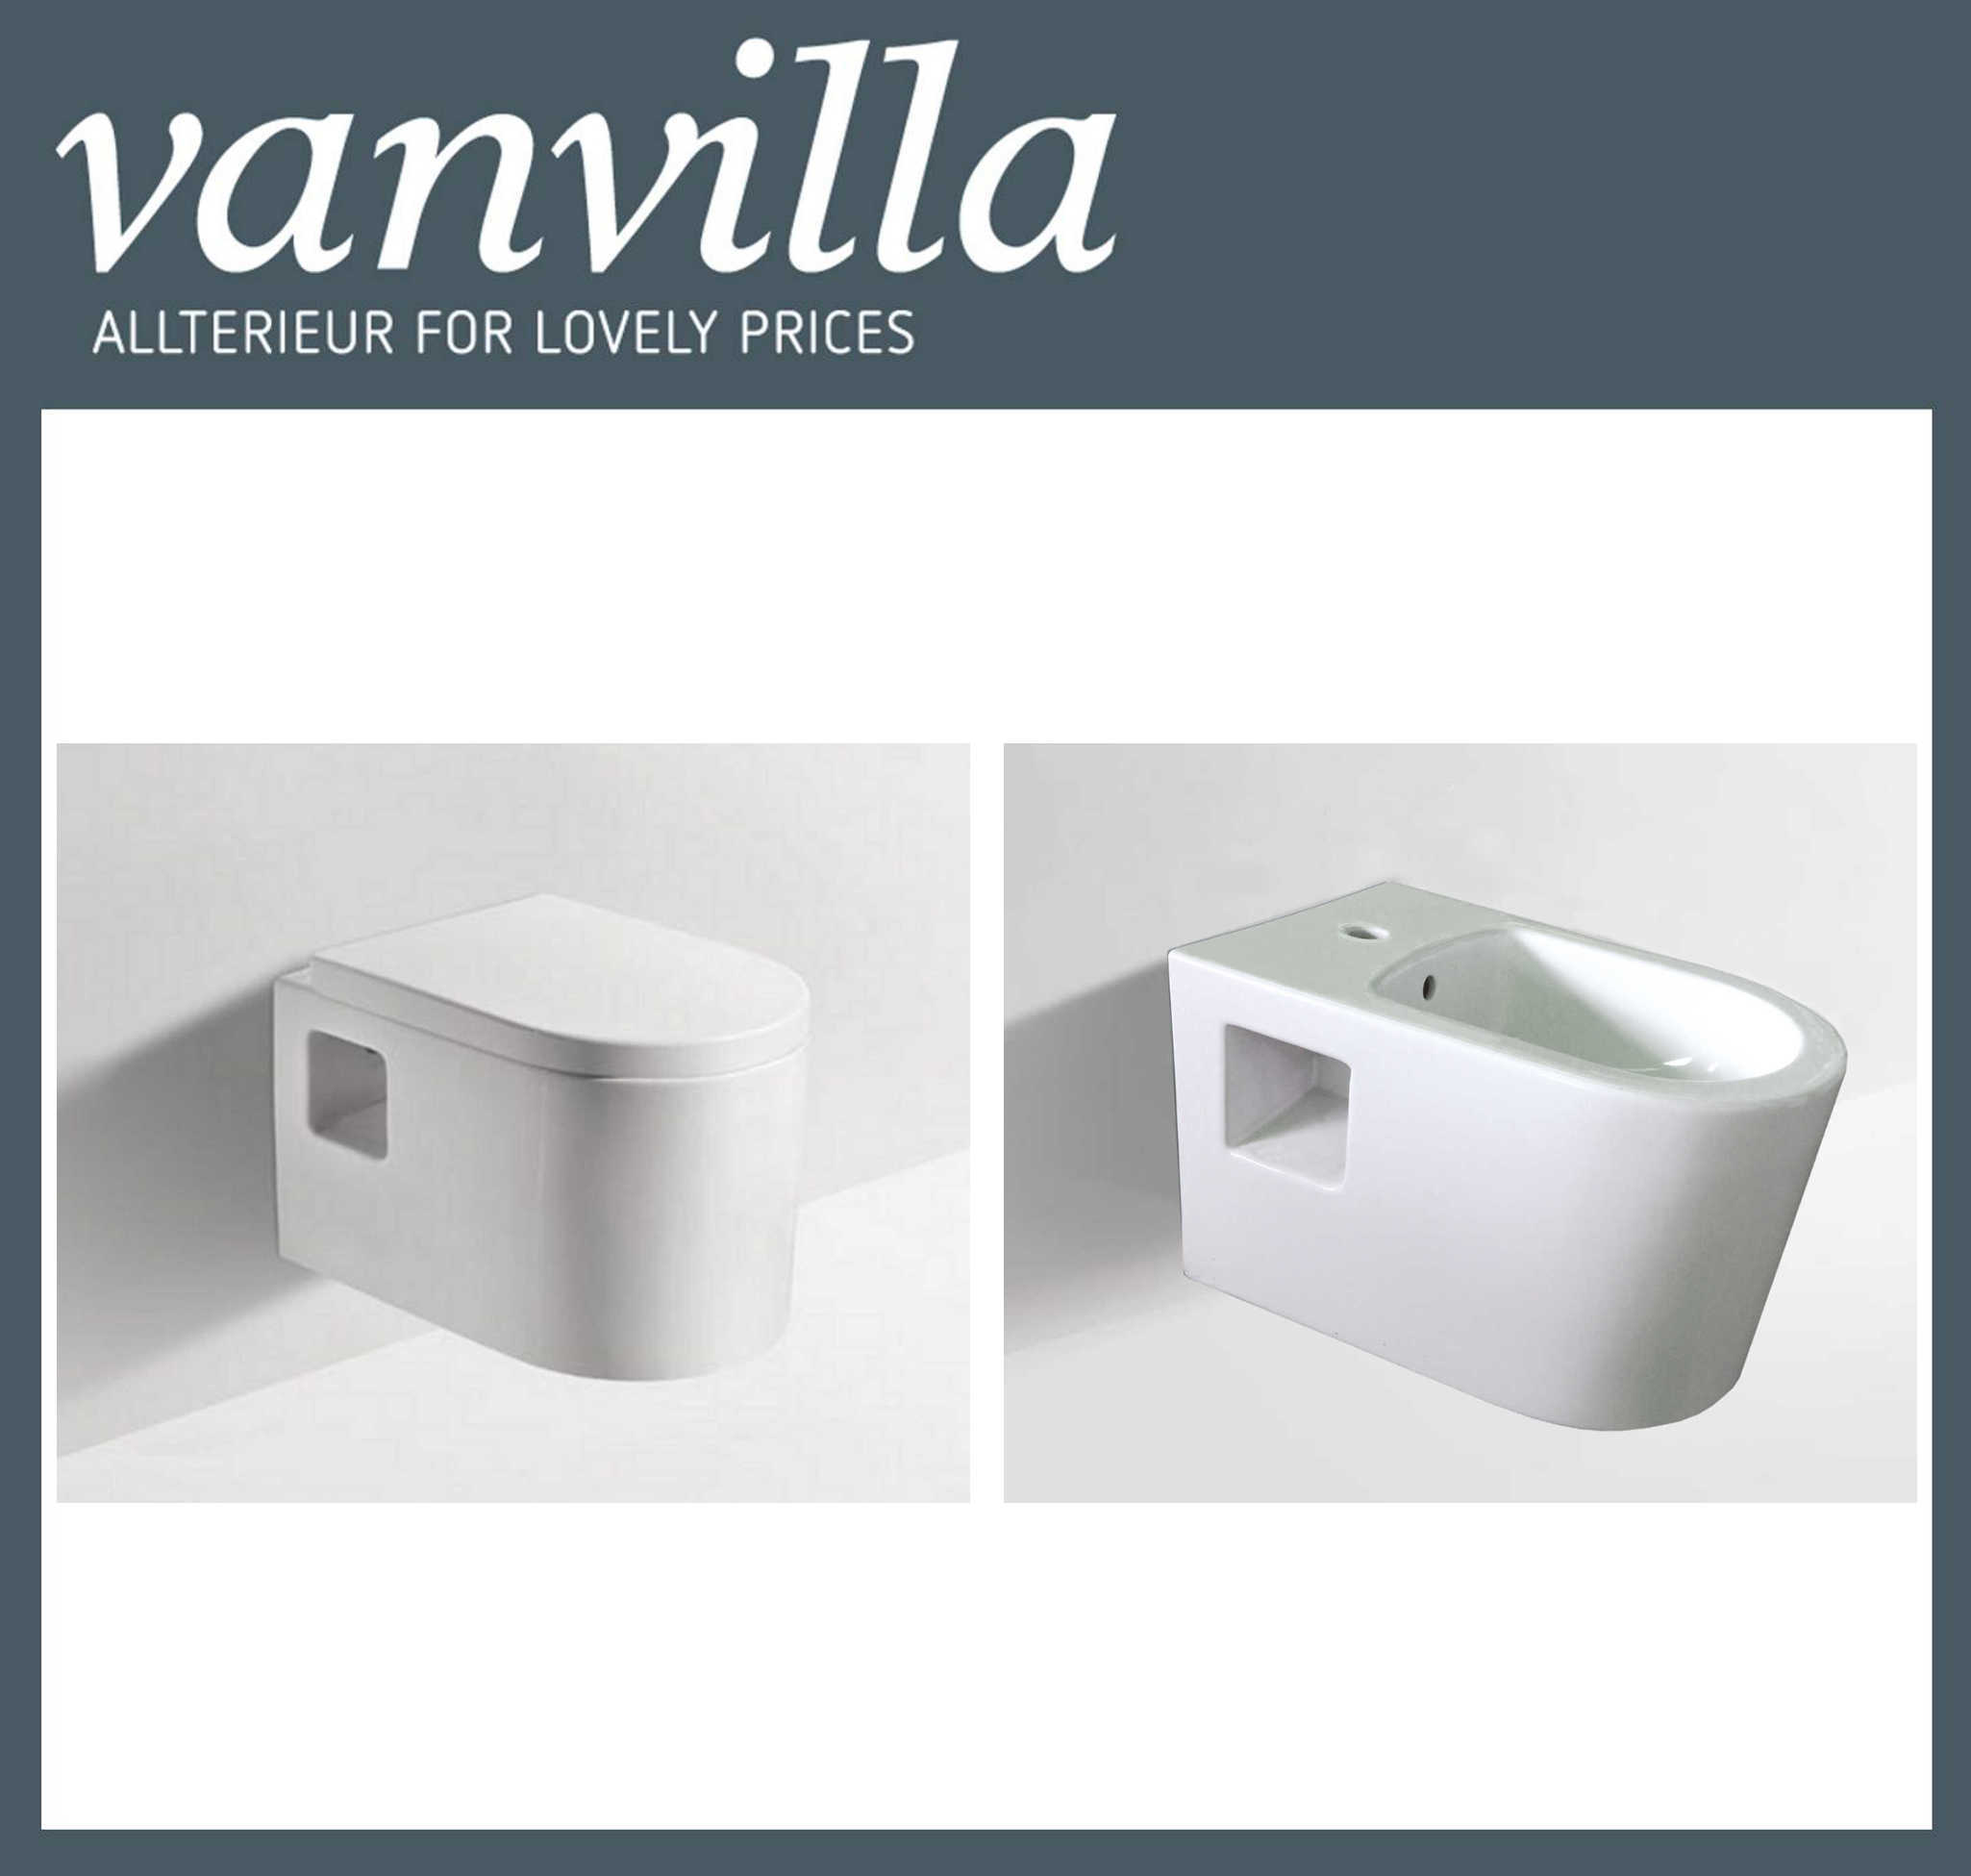 vanvilla design h nge wc837 bidet 837 set. Black Bedroom Furniture Sets. Home Design Ideas